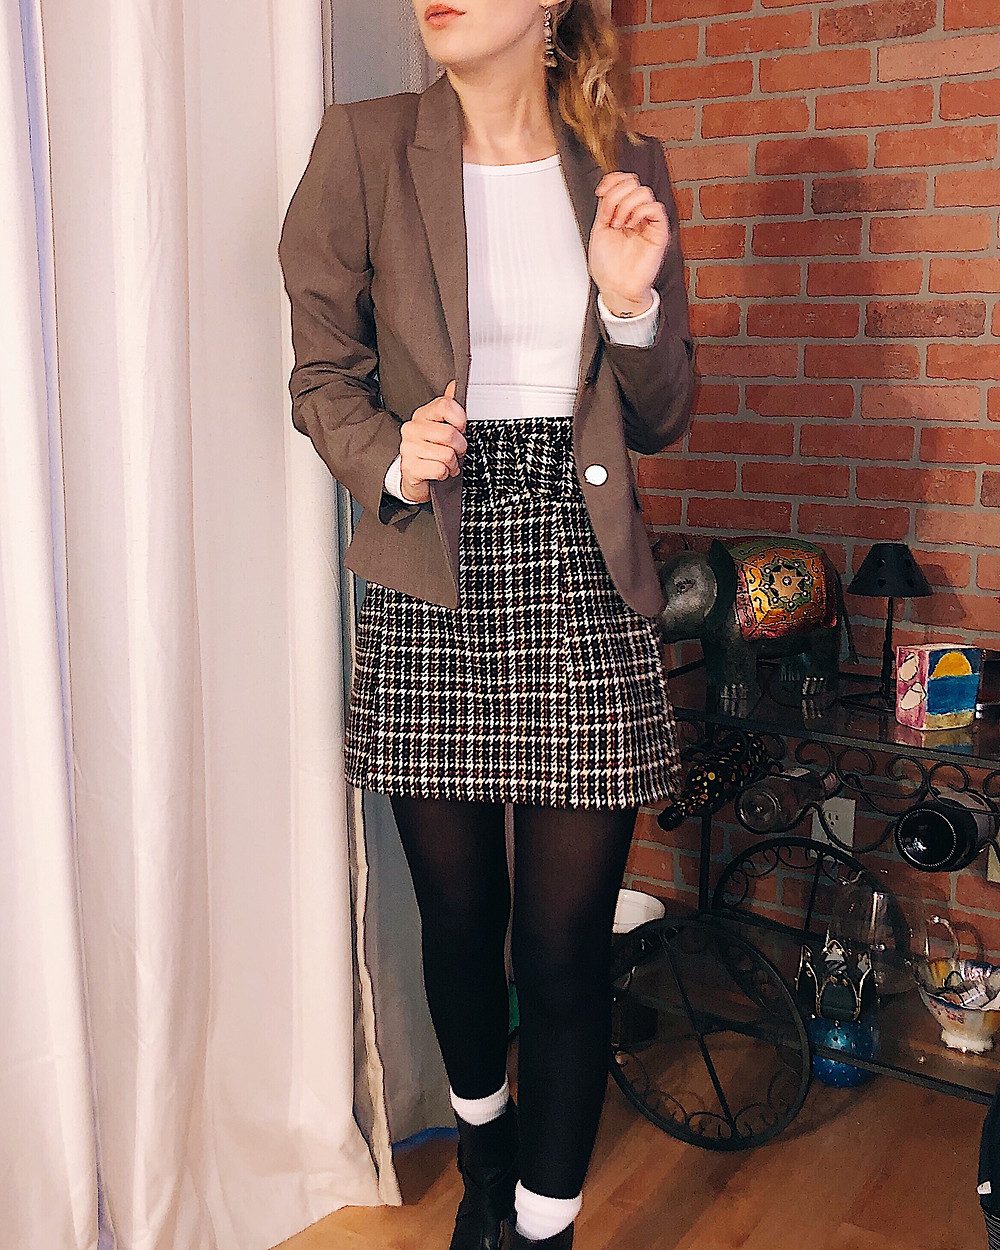 Abby Graf, the Bleached Curl, plaid skirt, minneapolis, outfit inspiration, winter outfit